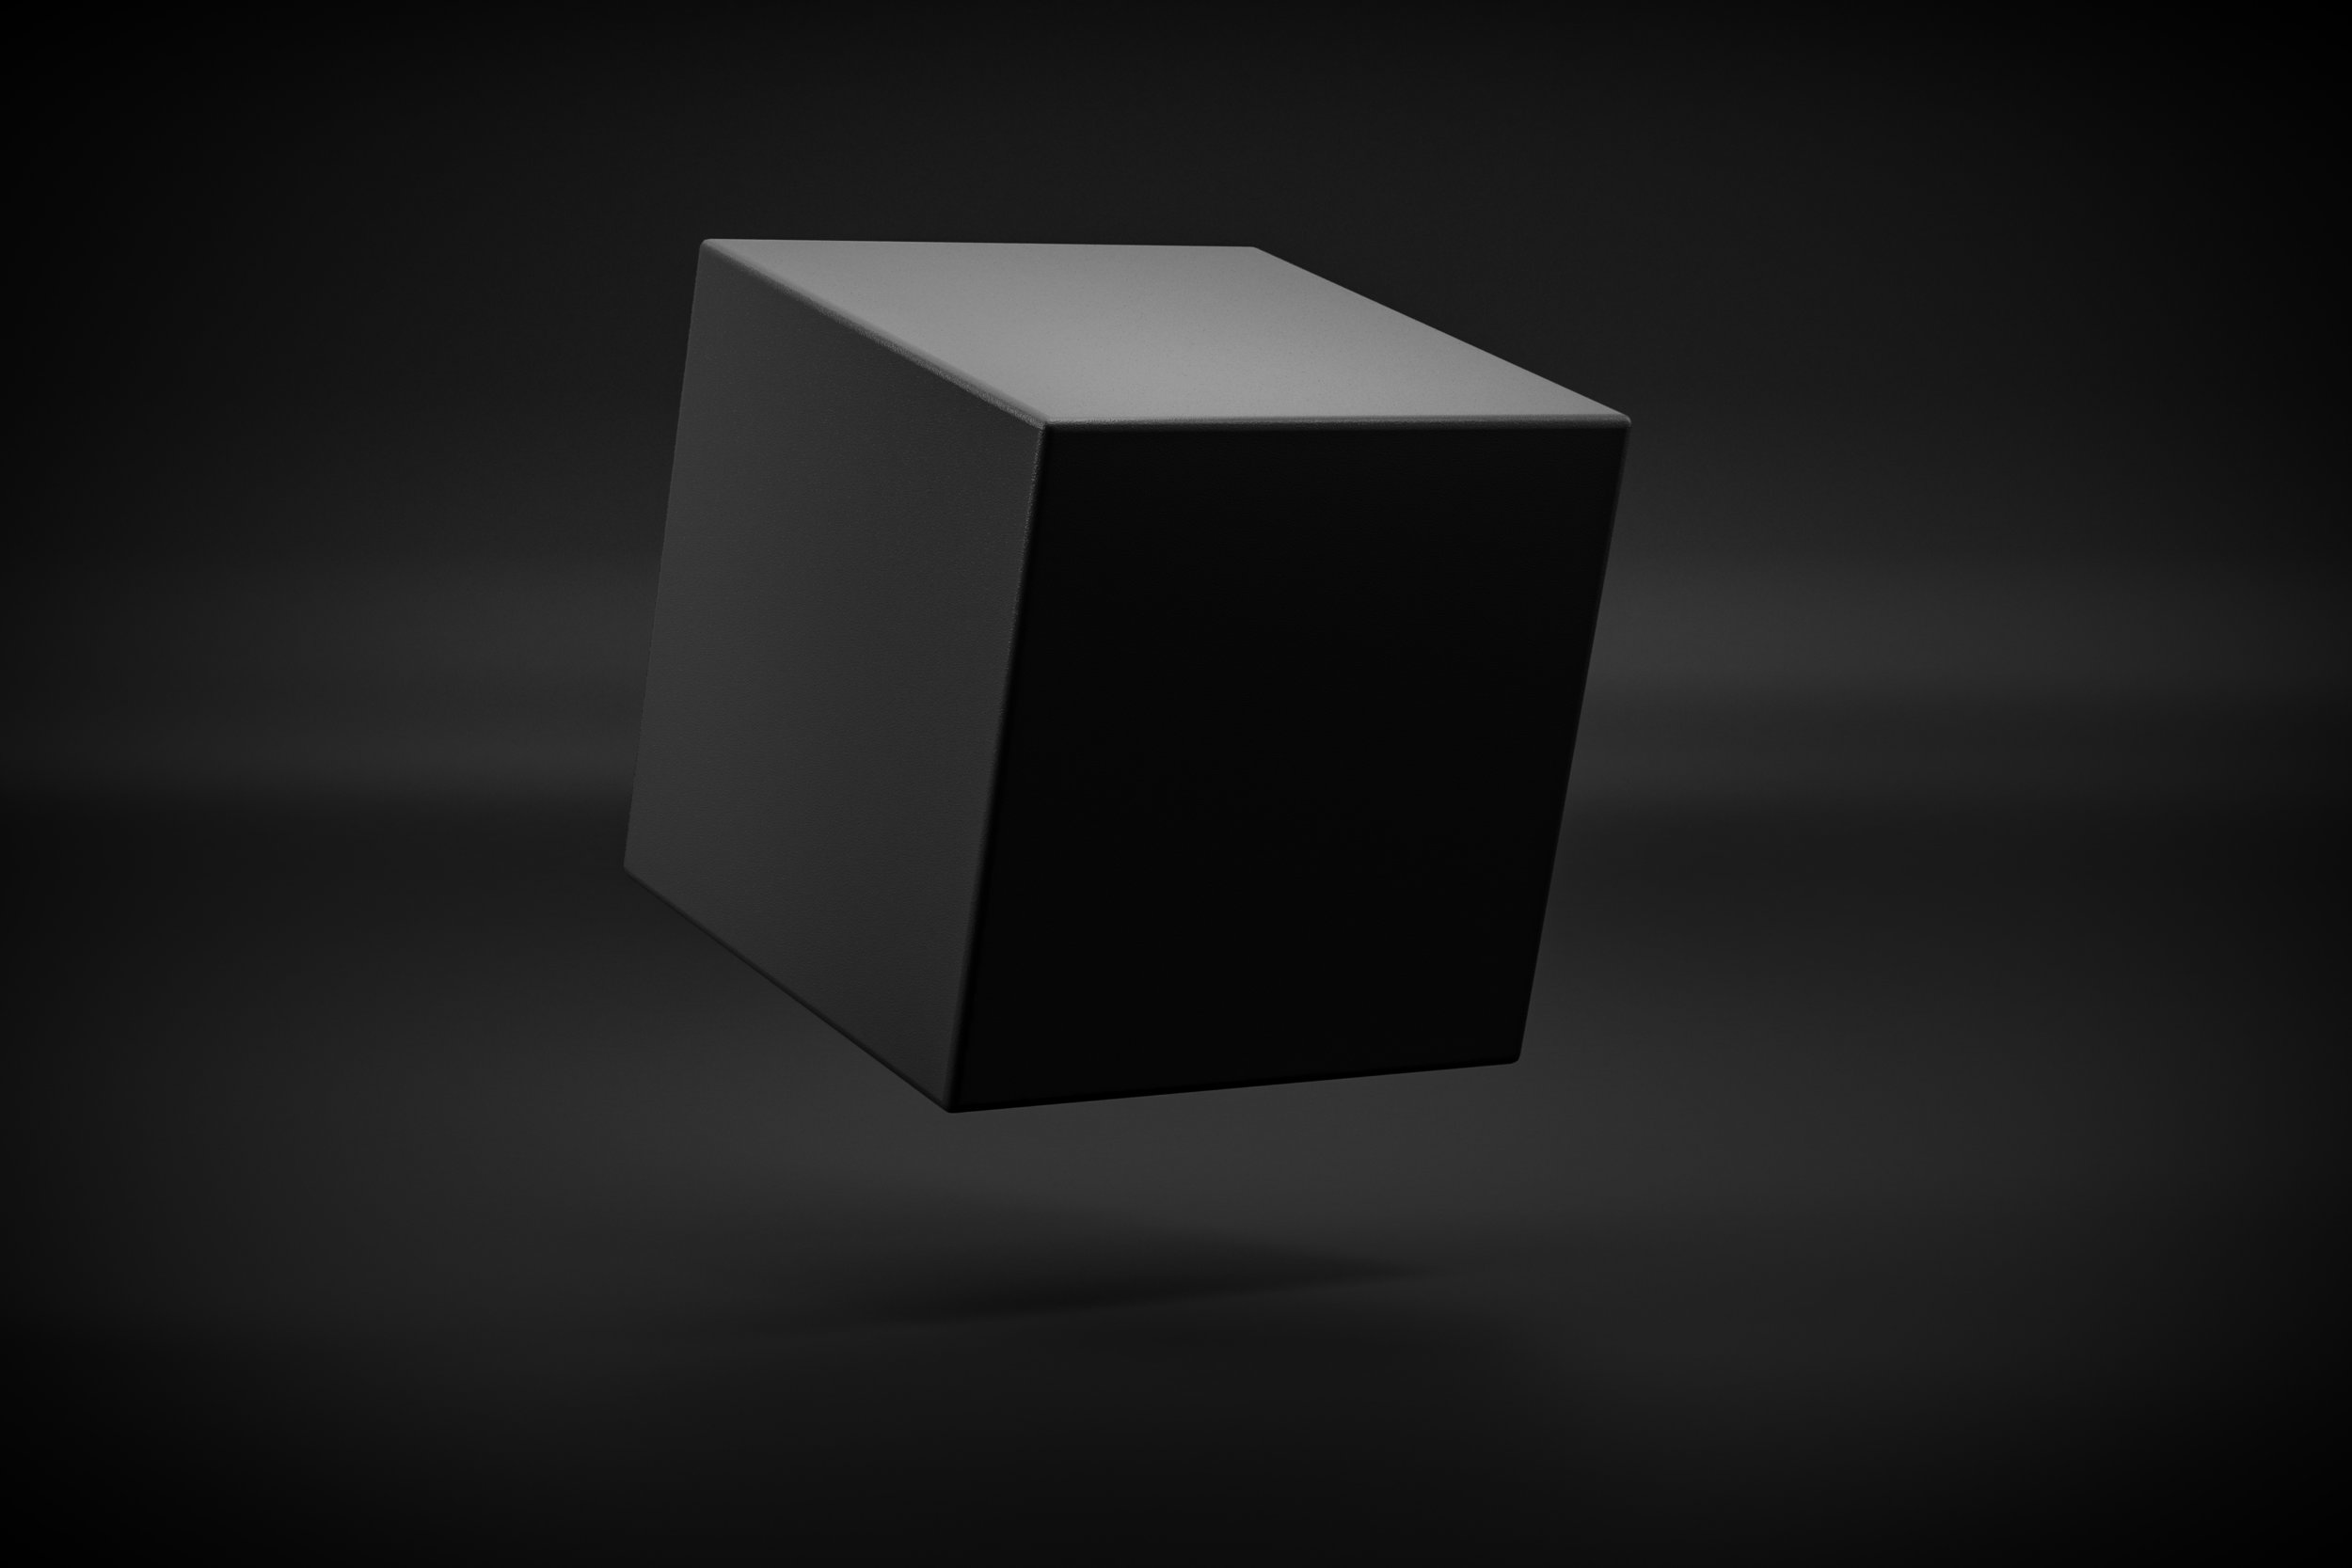 The mysterious black box - Who knows what's inside?